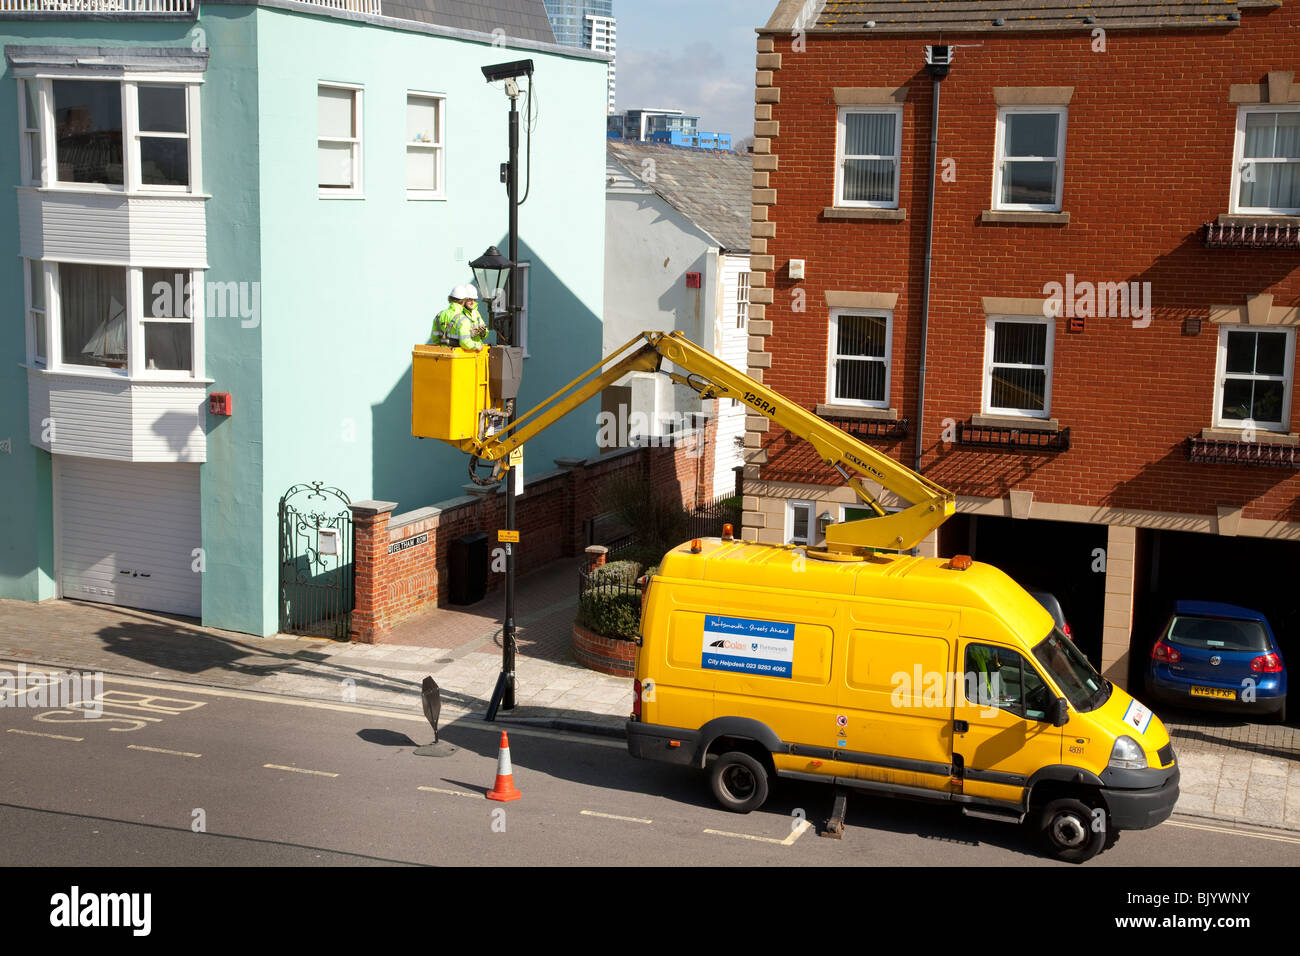 street furniture maintenance workers using a cherry picker van to maintain street lights - Stock Image